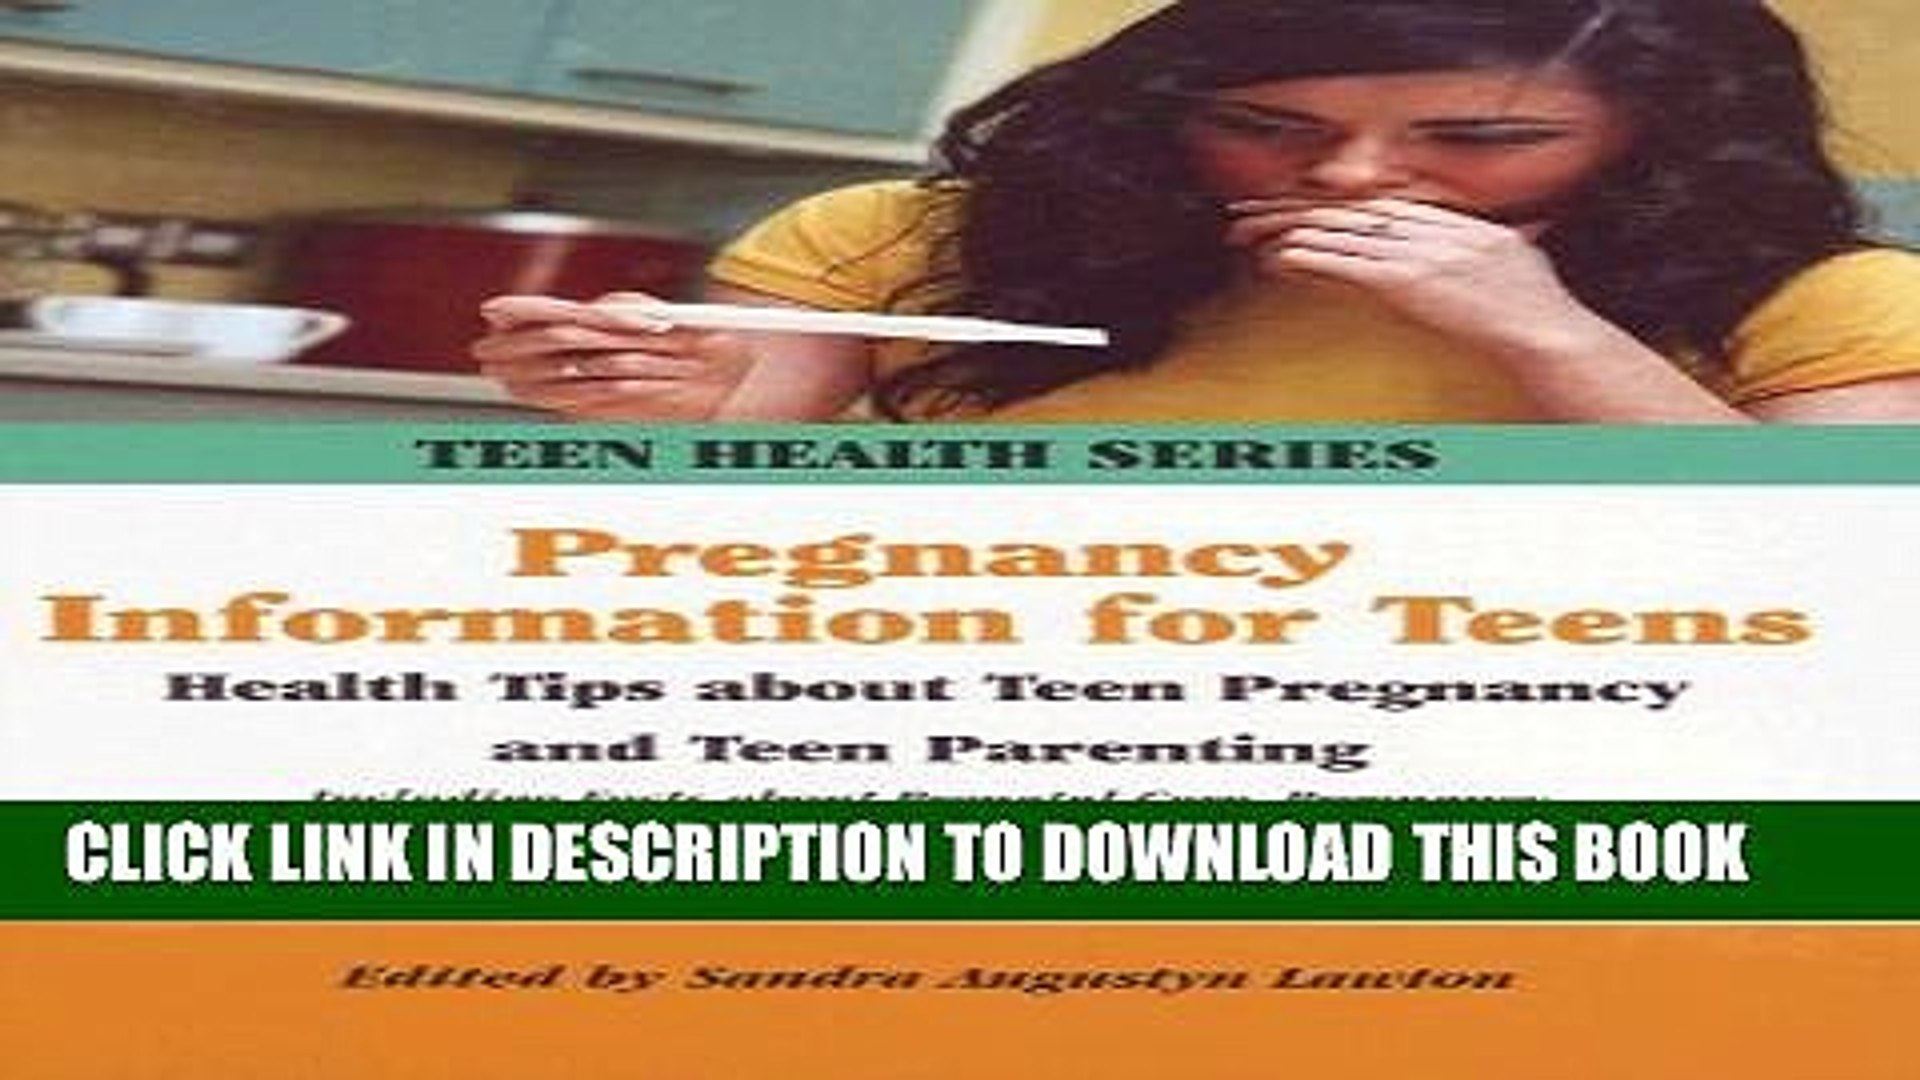 [PDF] Pregnancy Information for Teens: Health Tips About Teen Pregnancy and Teen Parenting (Teen